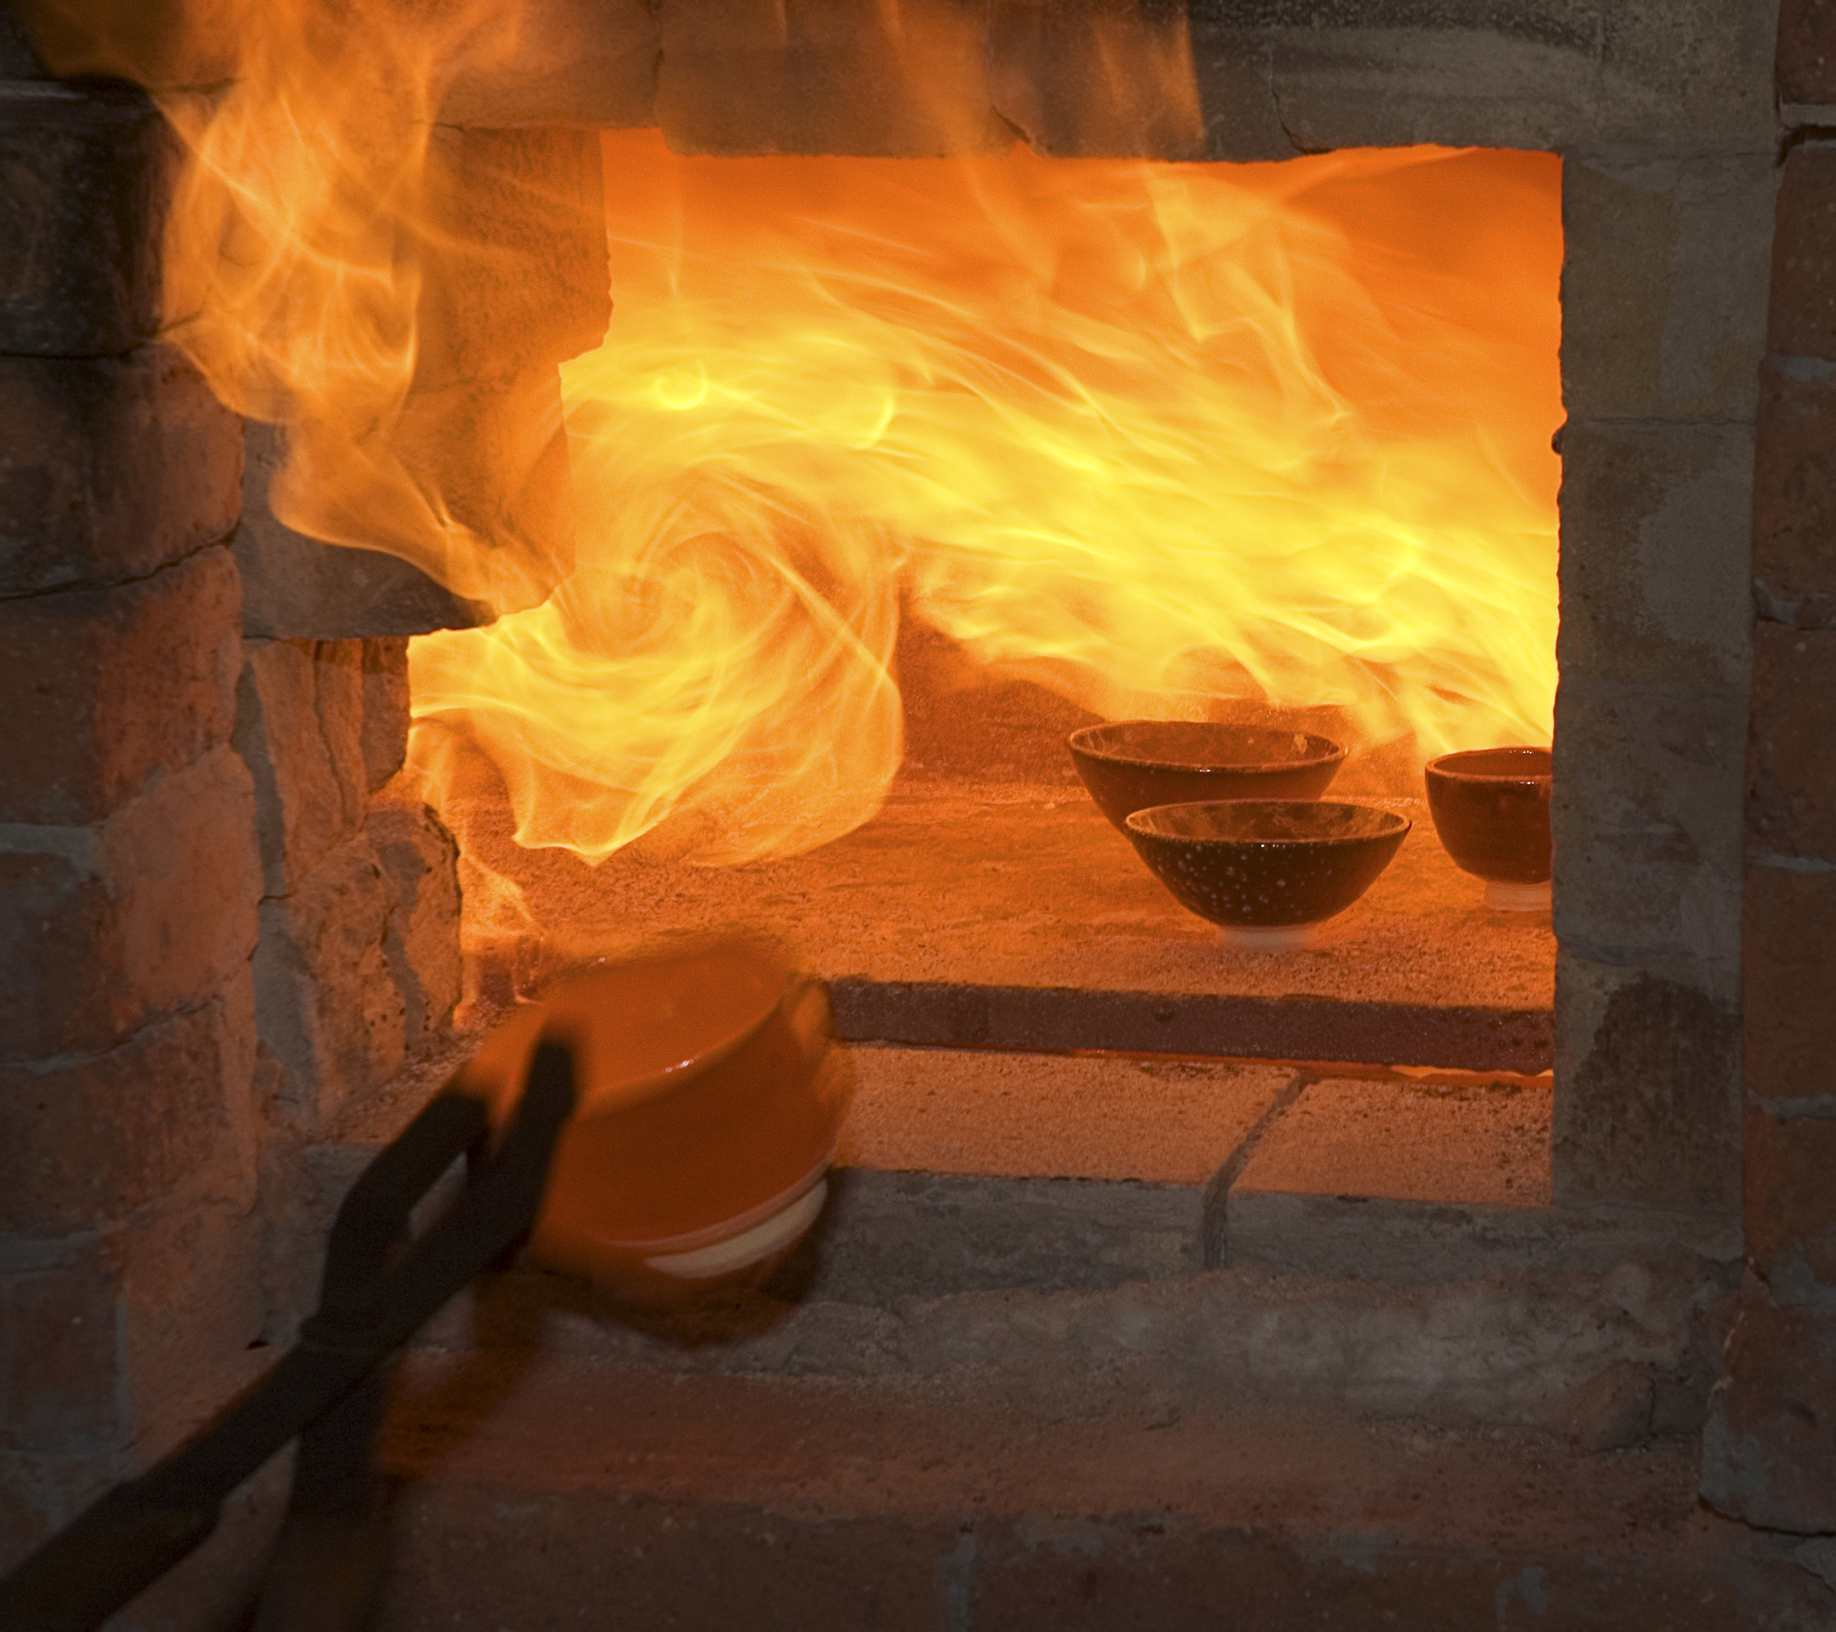 Fire emitting from a kiln